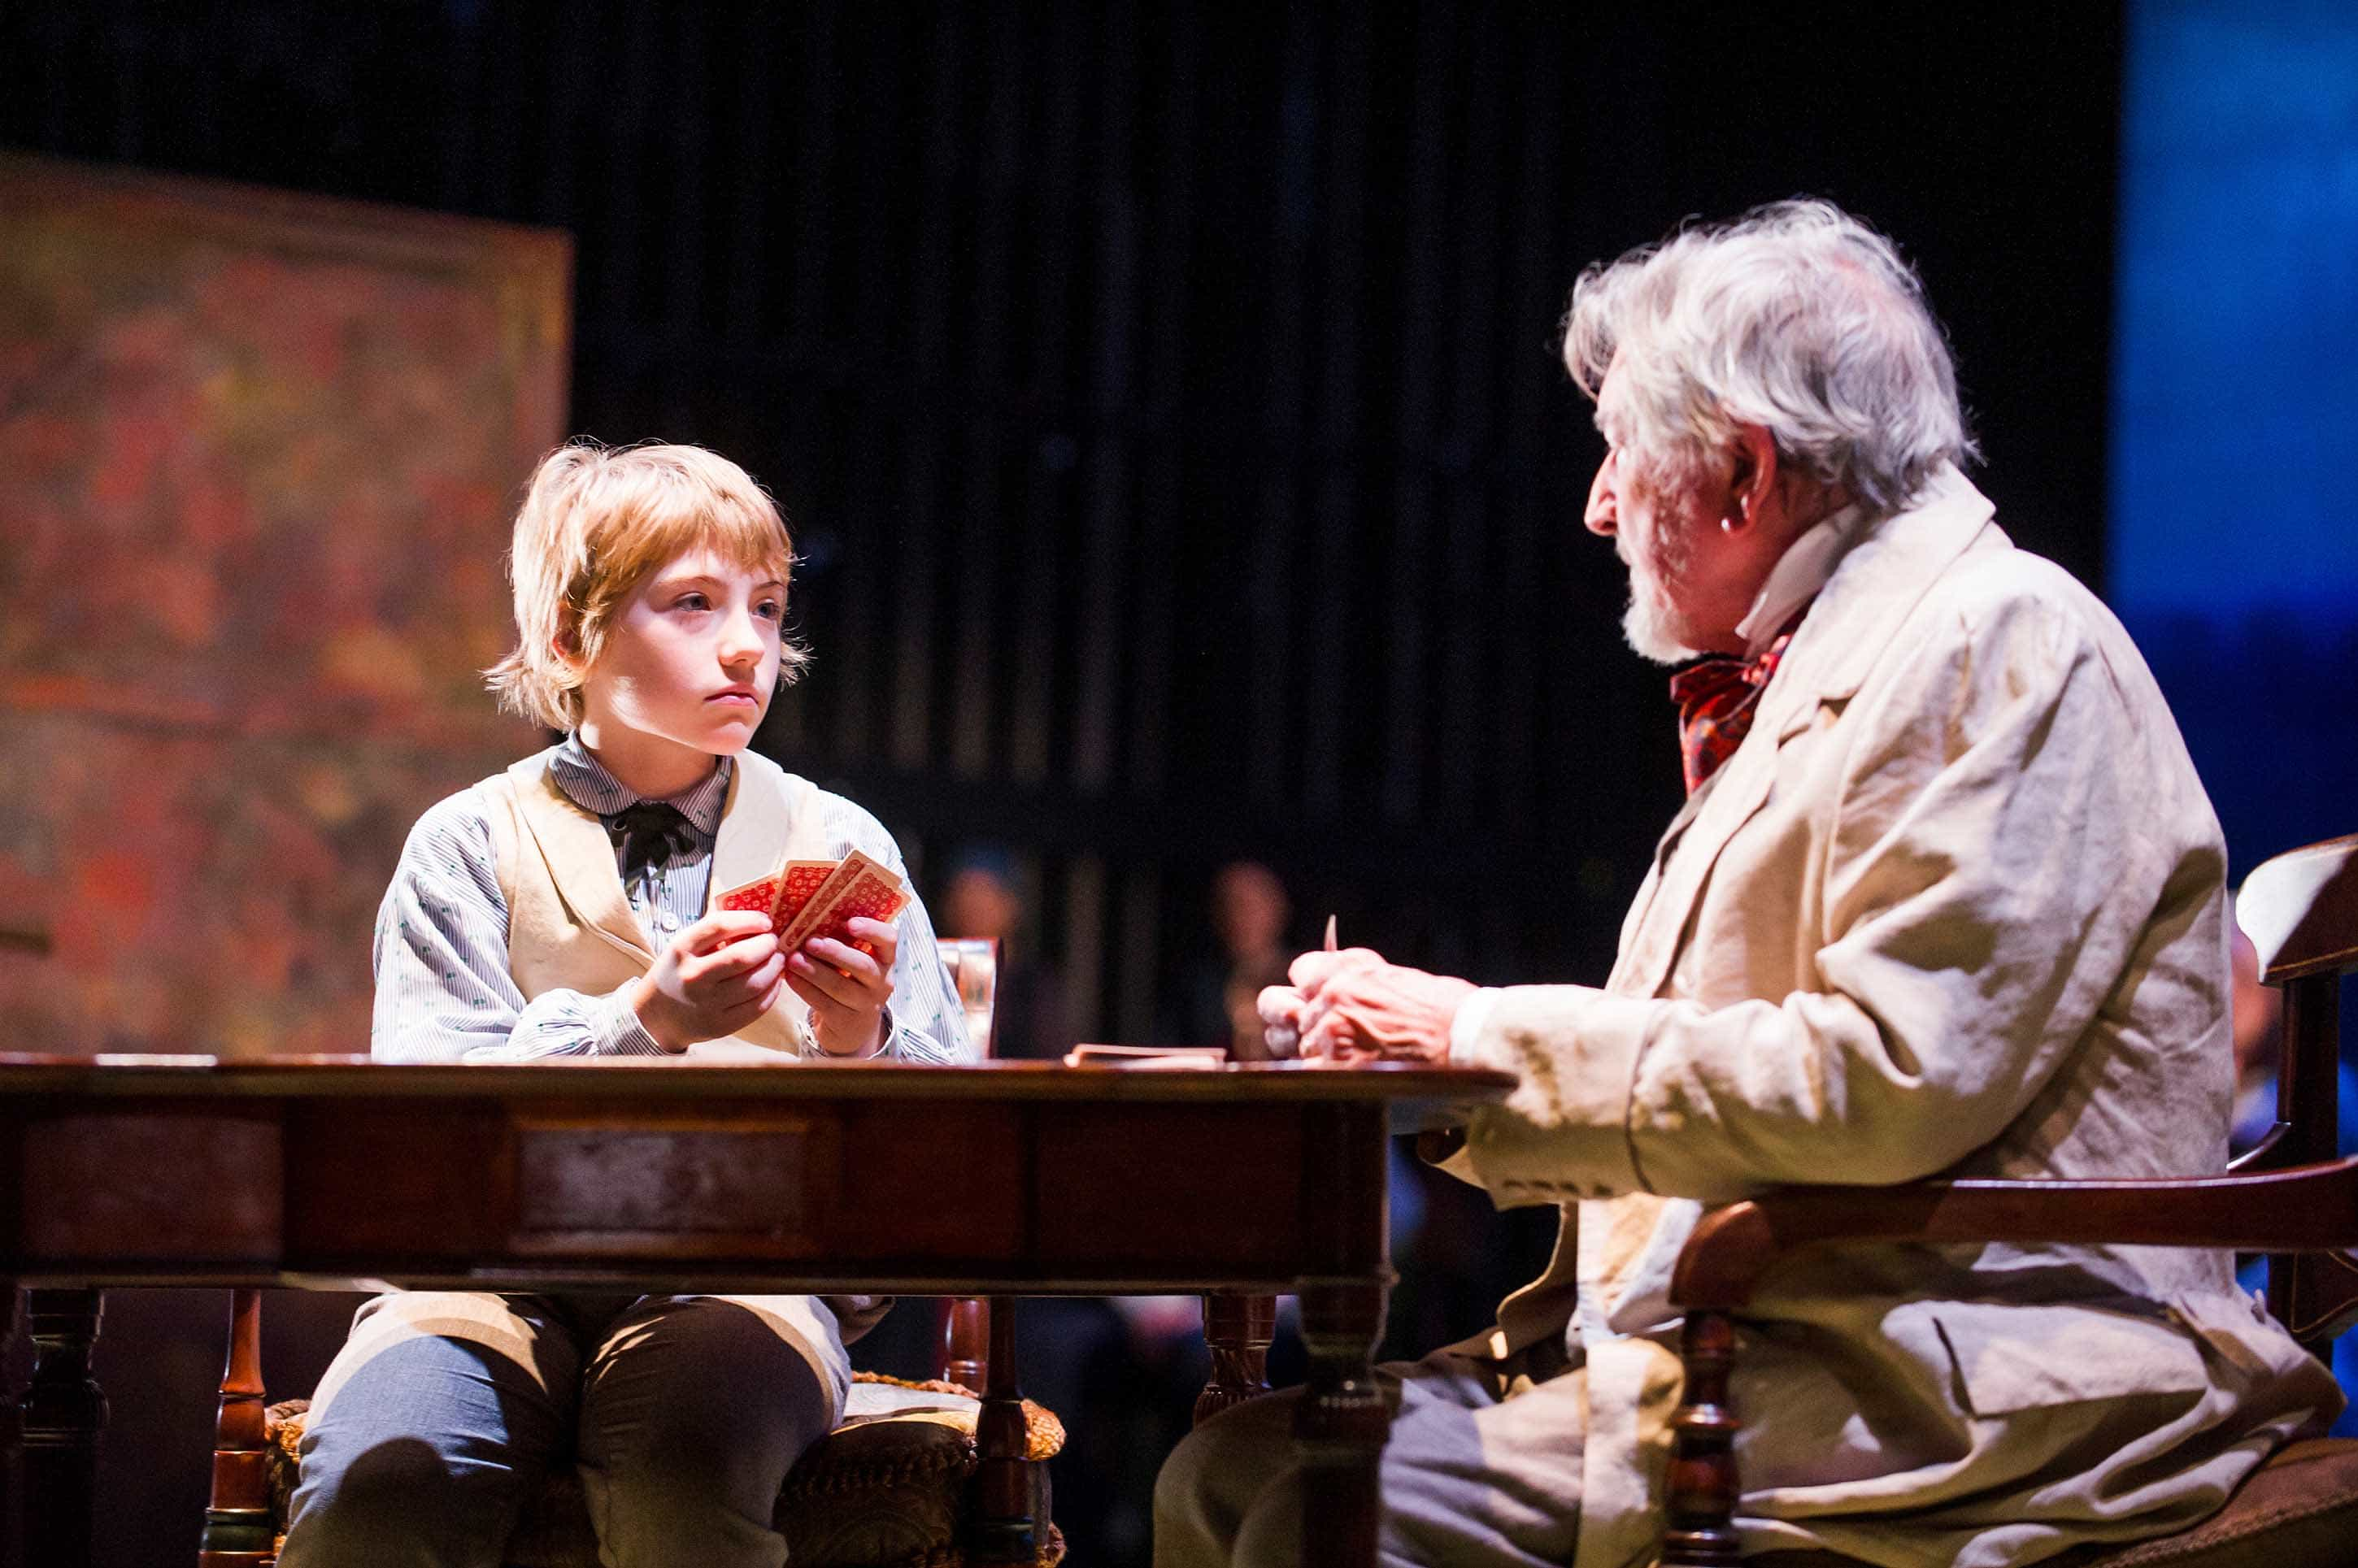 Three Days in the Country by Patrick Marber, after Turgenev |National Theatre | Photos: Three Days in the Country at the National Theatre